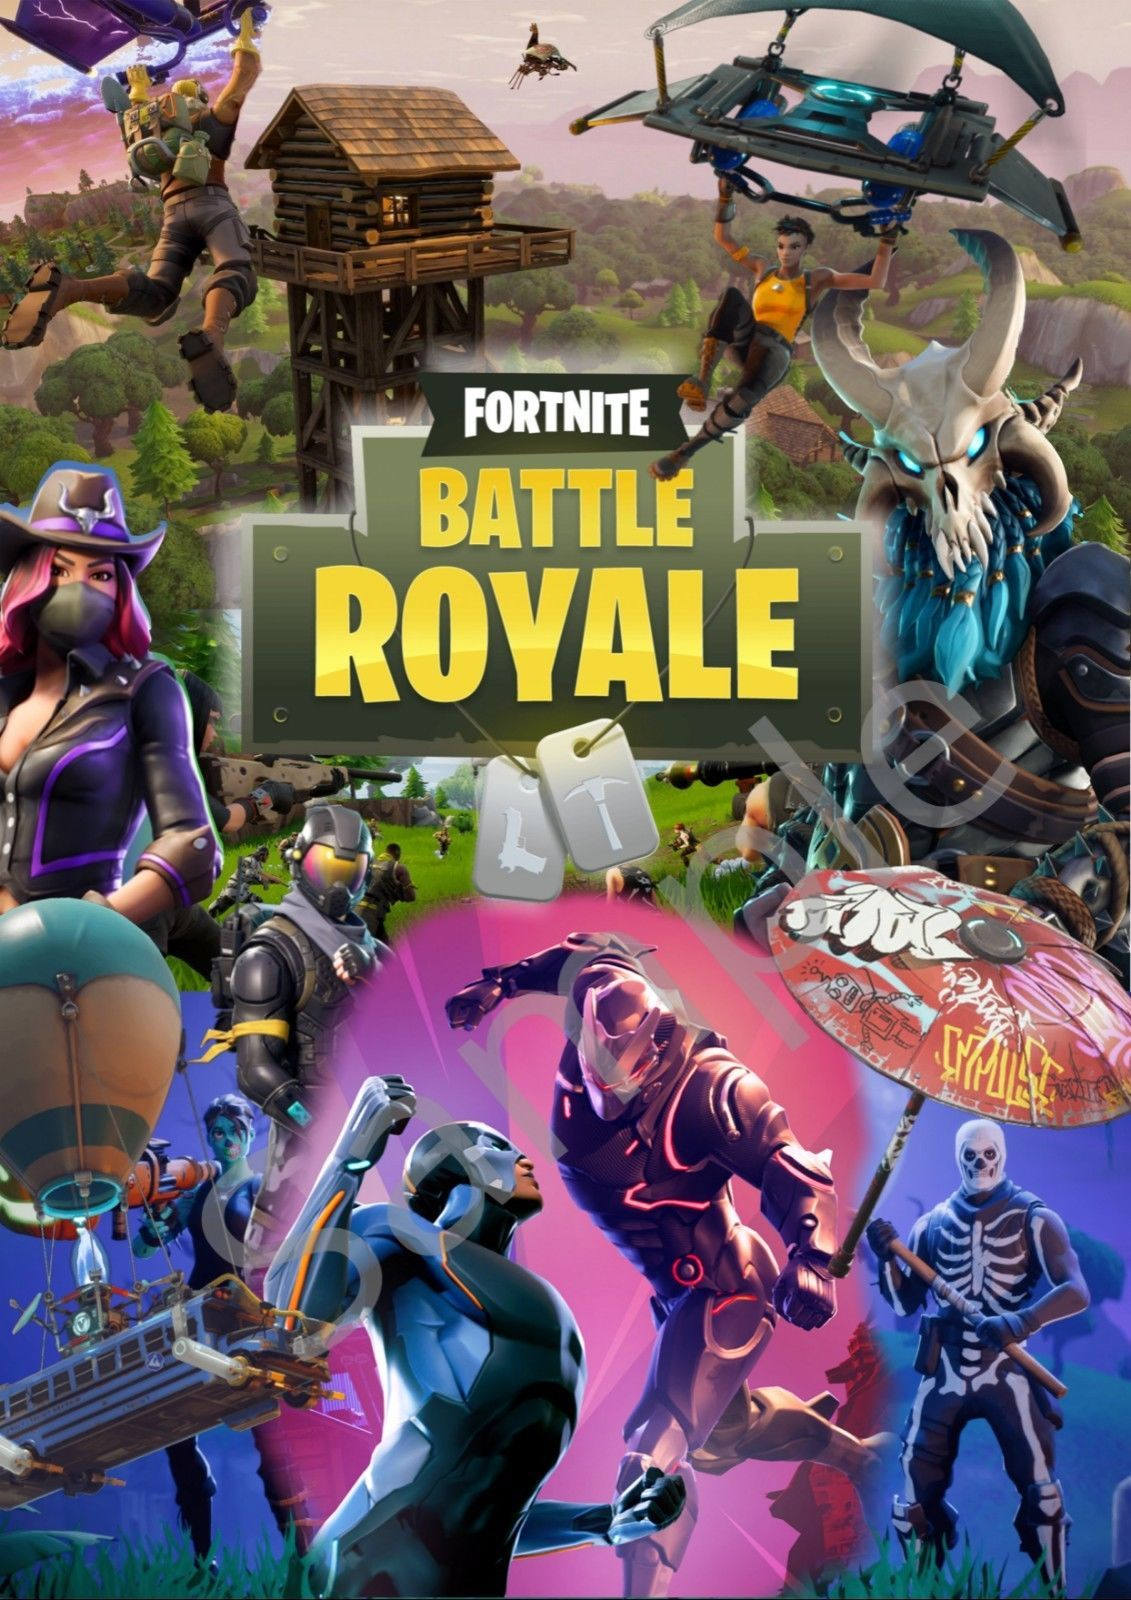 Large FORTNITE GAME POSTER A2 Gaming wall art, Gaming